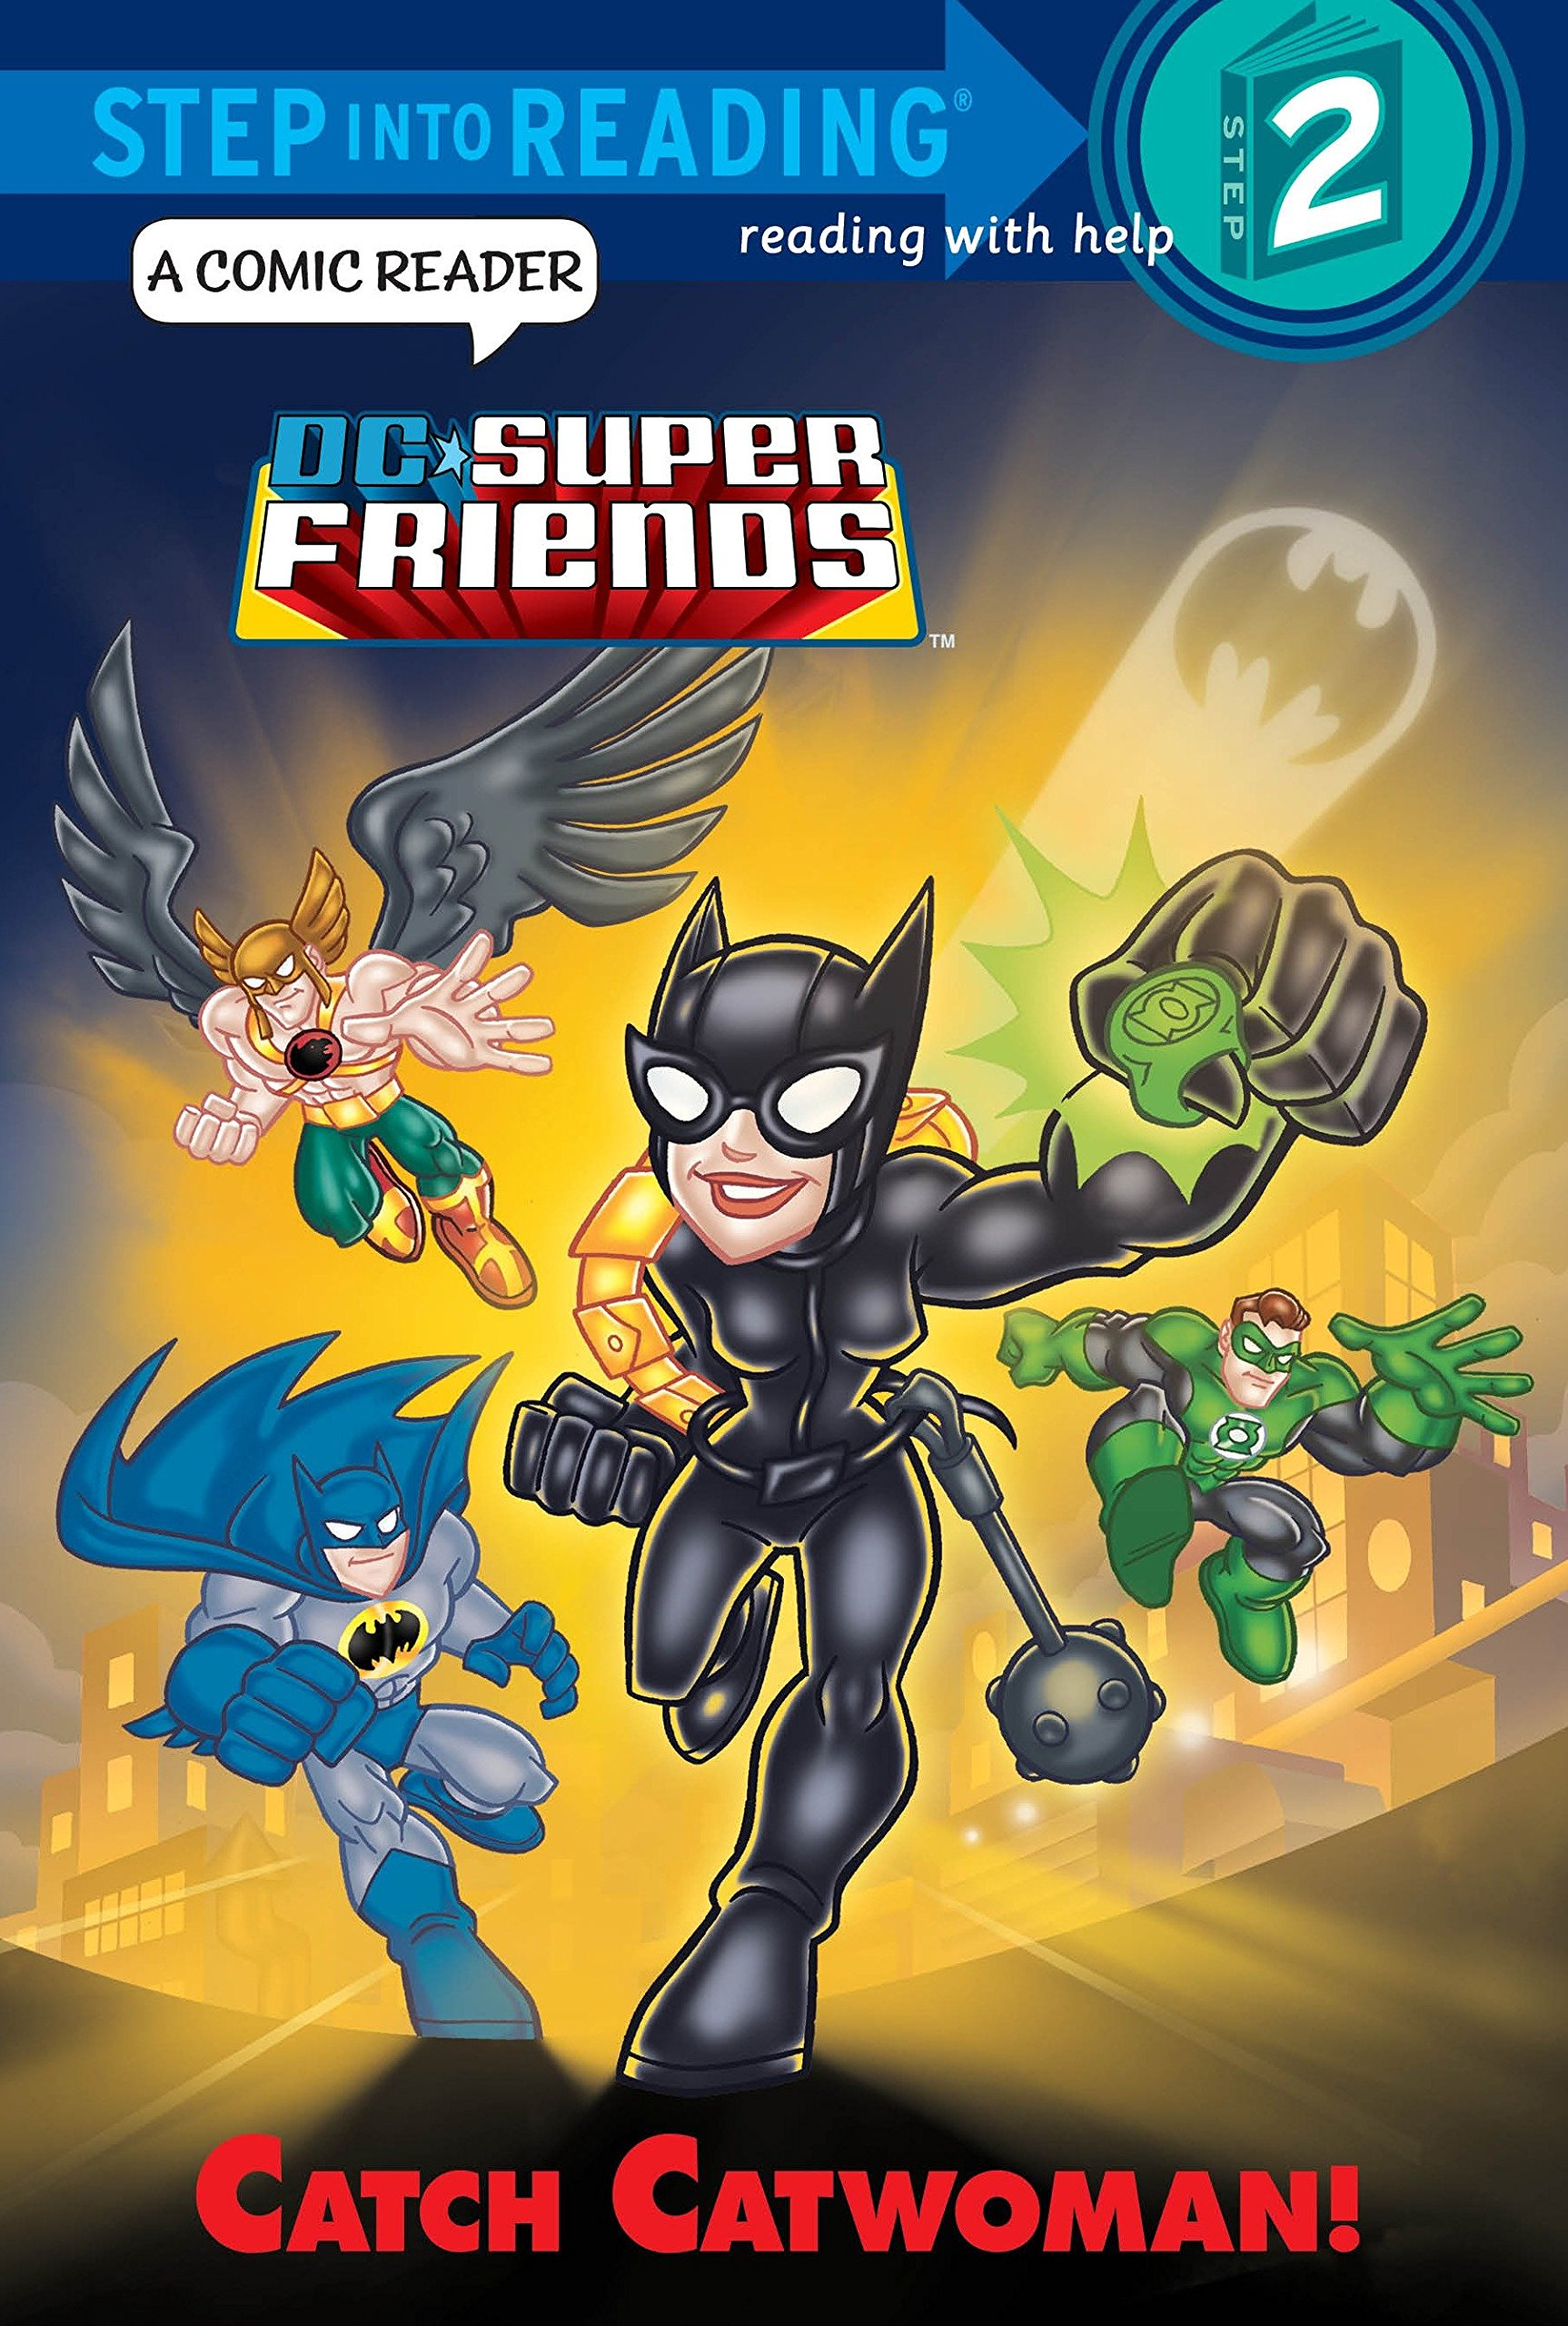 Read Online Catch Catwoman! (DC Super Friends) (Step into Reading) ebook